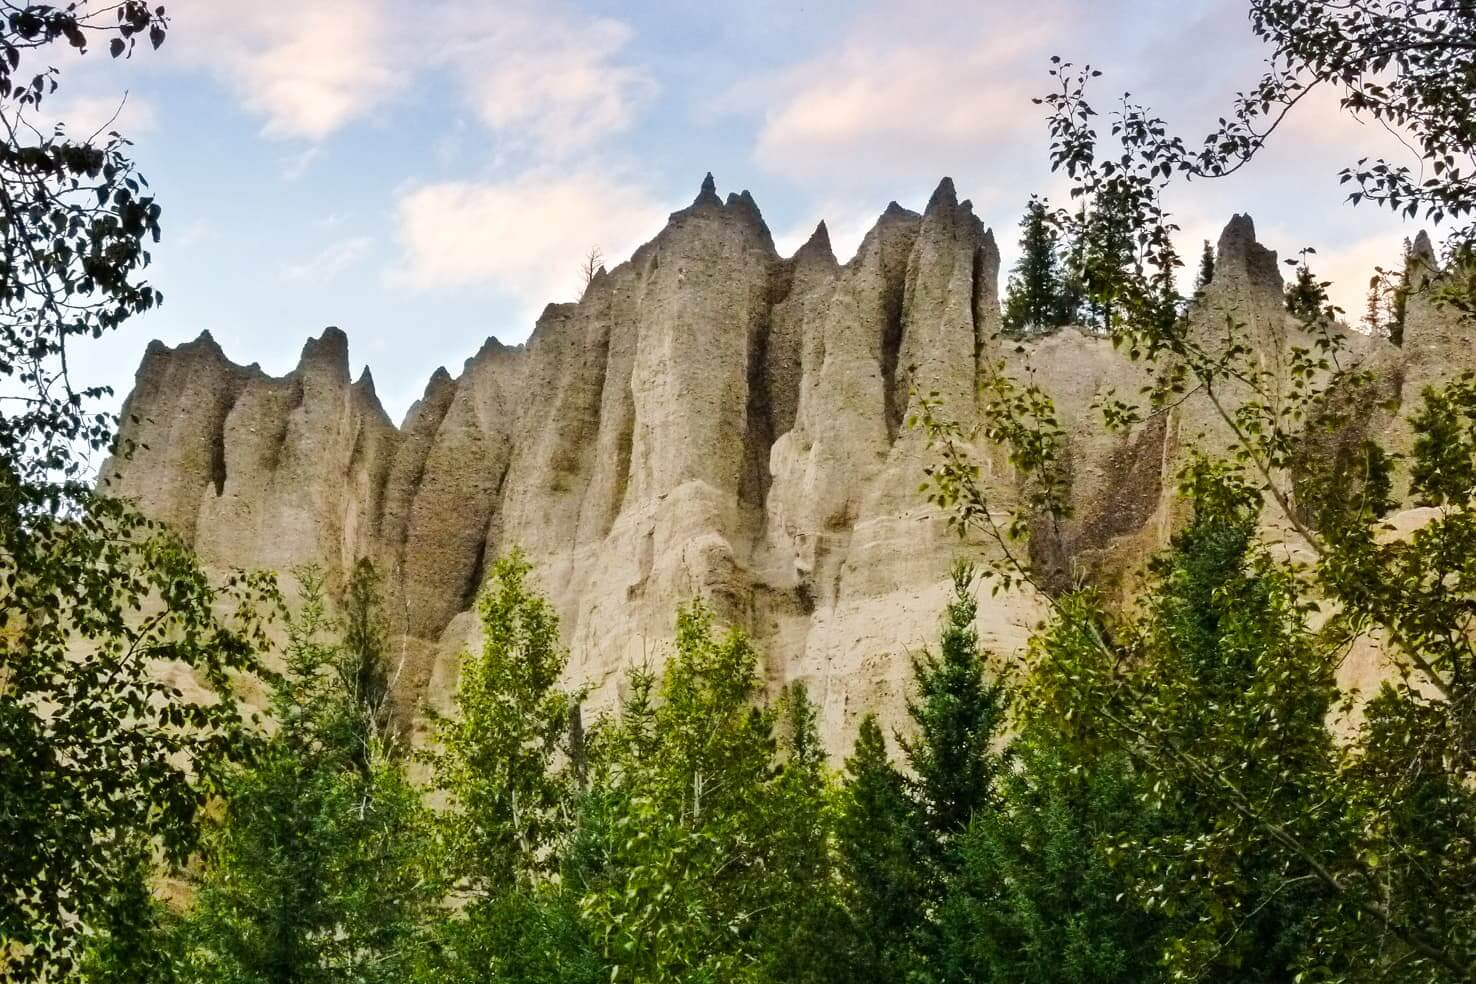 100 best things to do in Banff National Park, Canada - Walk to the Banff Hoodoos